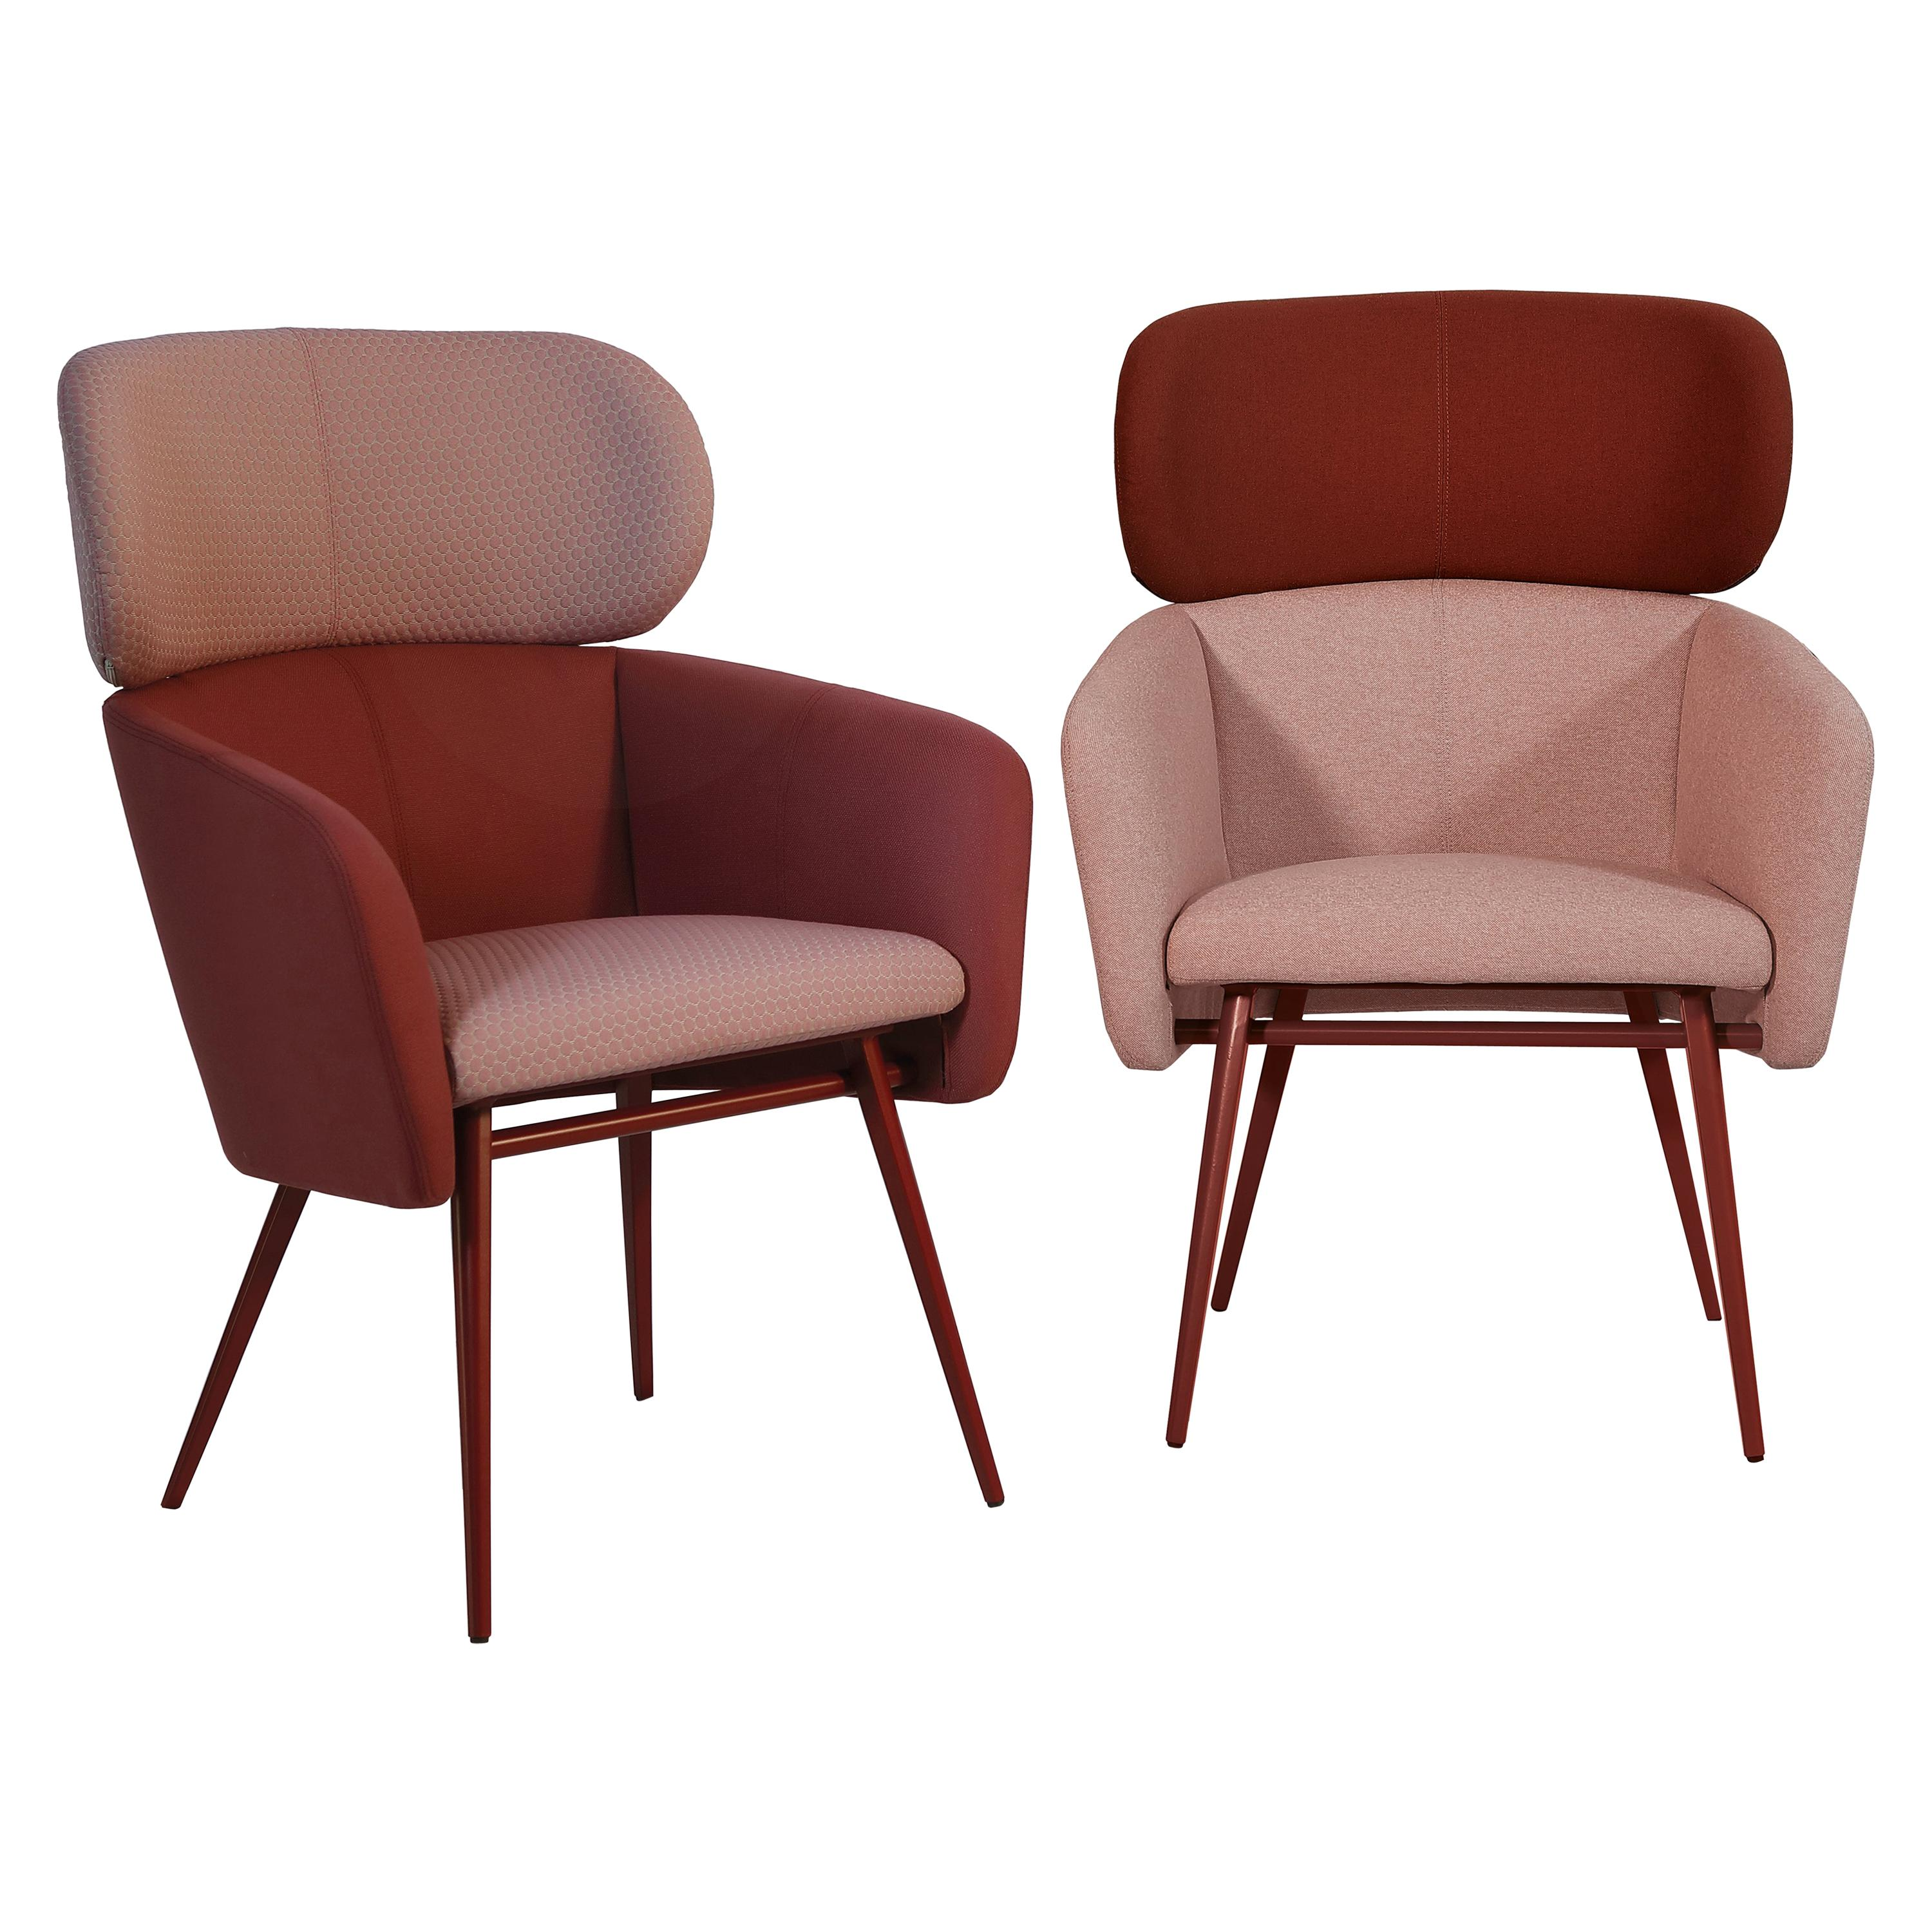 Armchair Balu' Lounge Metal Frame and Fabric Red Color by Emilio Nanni